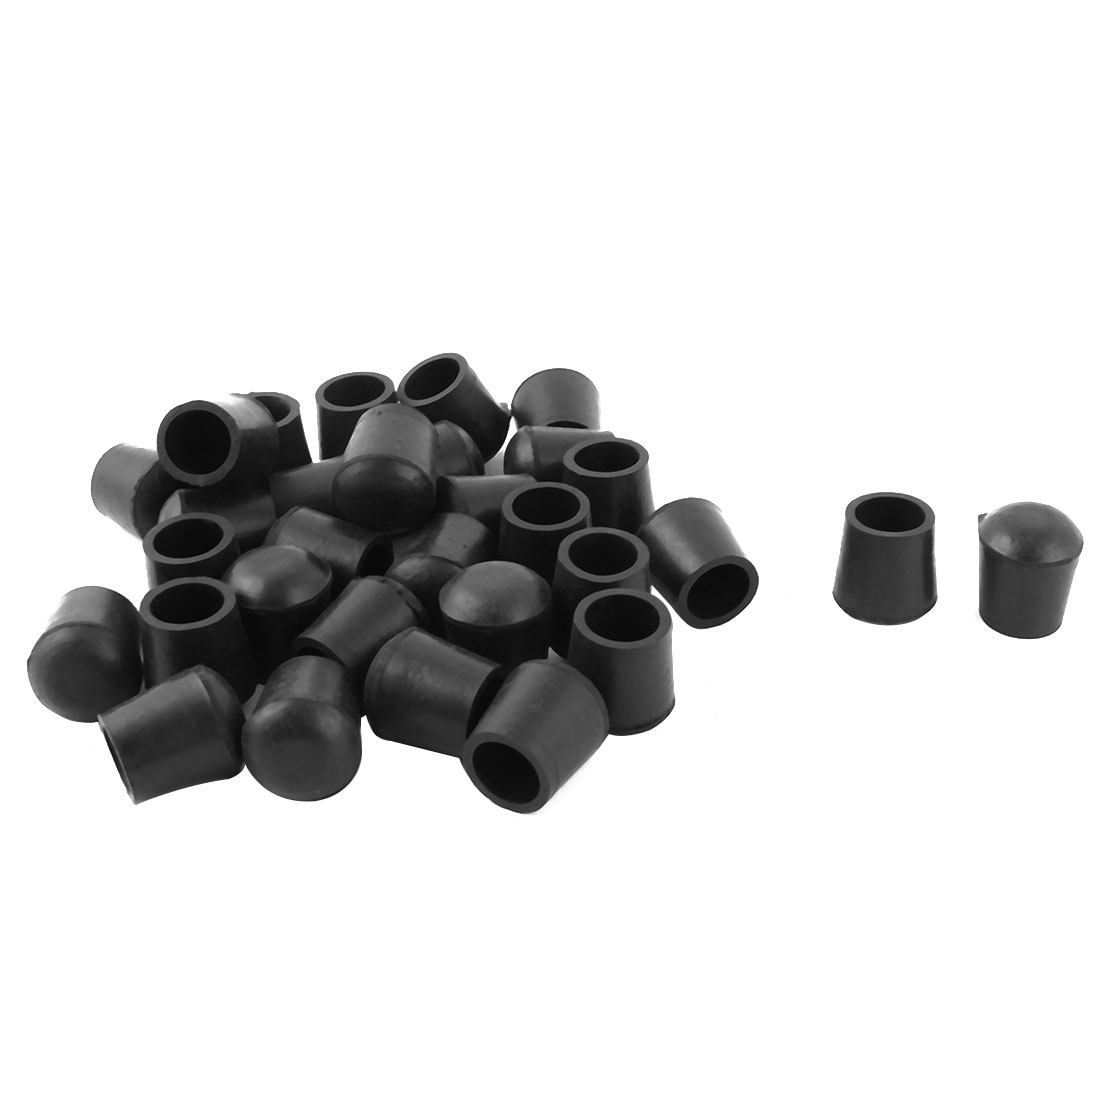 Home Rubber Furniture Table Foot Dirt Protector Cover Black 16mm Dia 31 Pcs